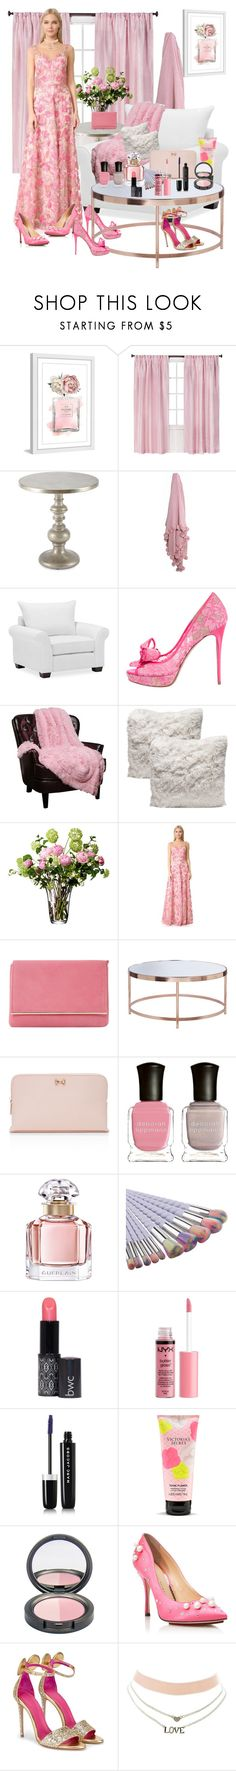 """""""What pair of shoes will she choose?"""" by jaja8x8 ❤ liked on Polyvore featuring Marmont Hill, Shabby Chic, Hooker Furniture, Pottery Barn, Valentino, LSA International, Notte by Marchesa, Dune, Ted Baker and Deborah Lippmann"""